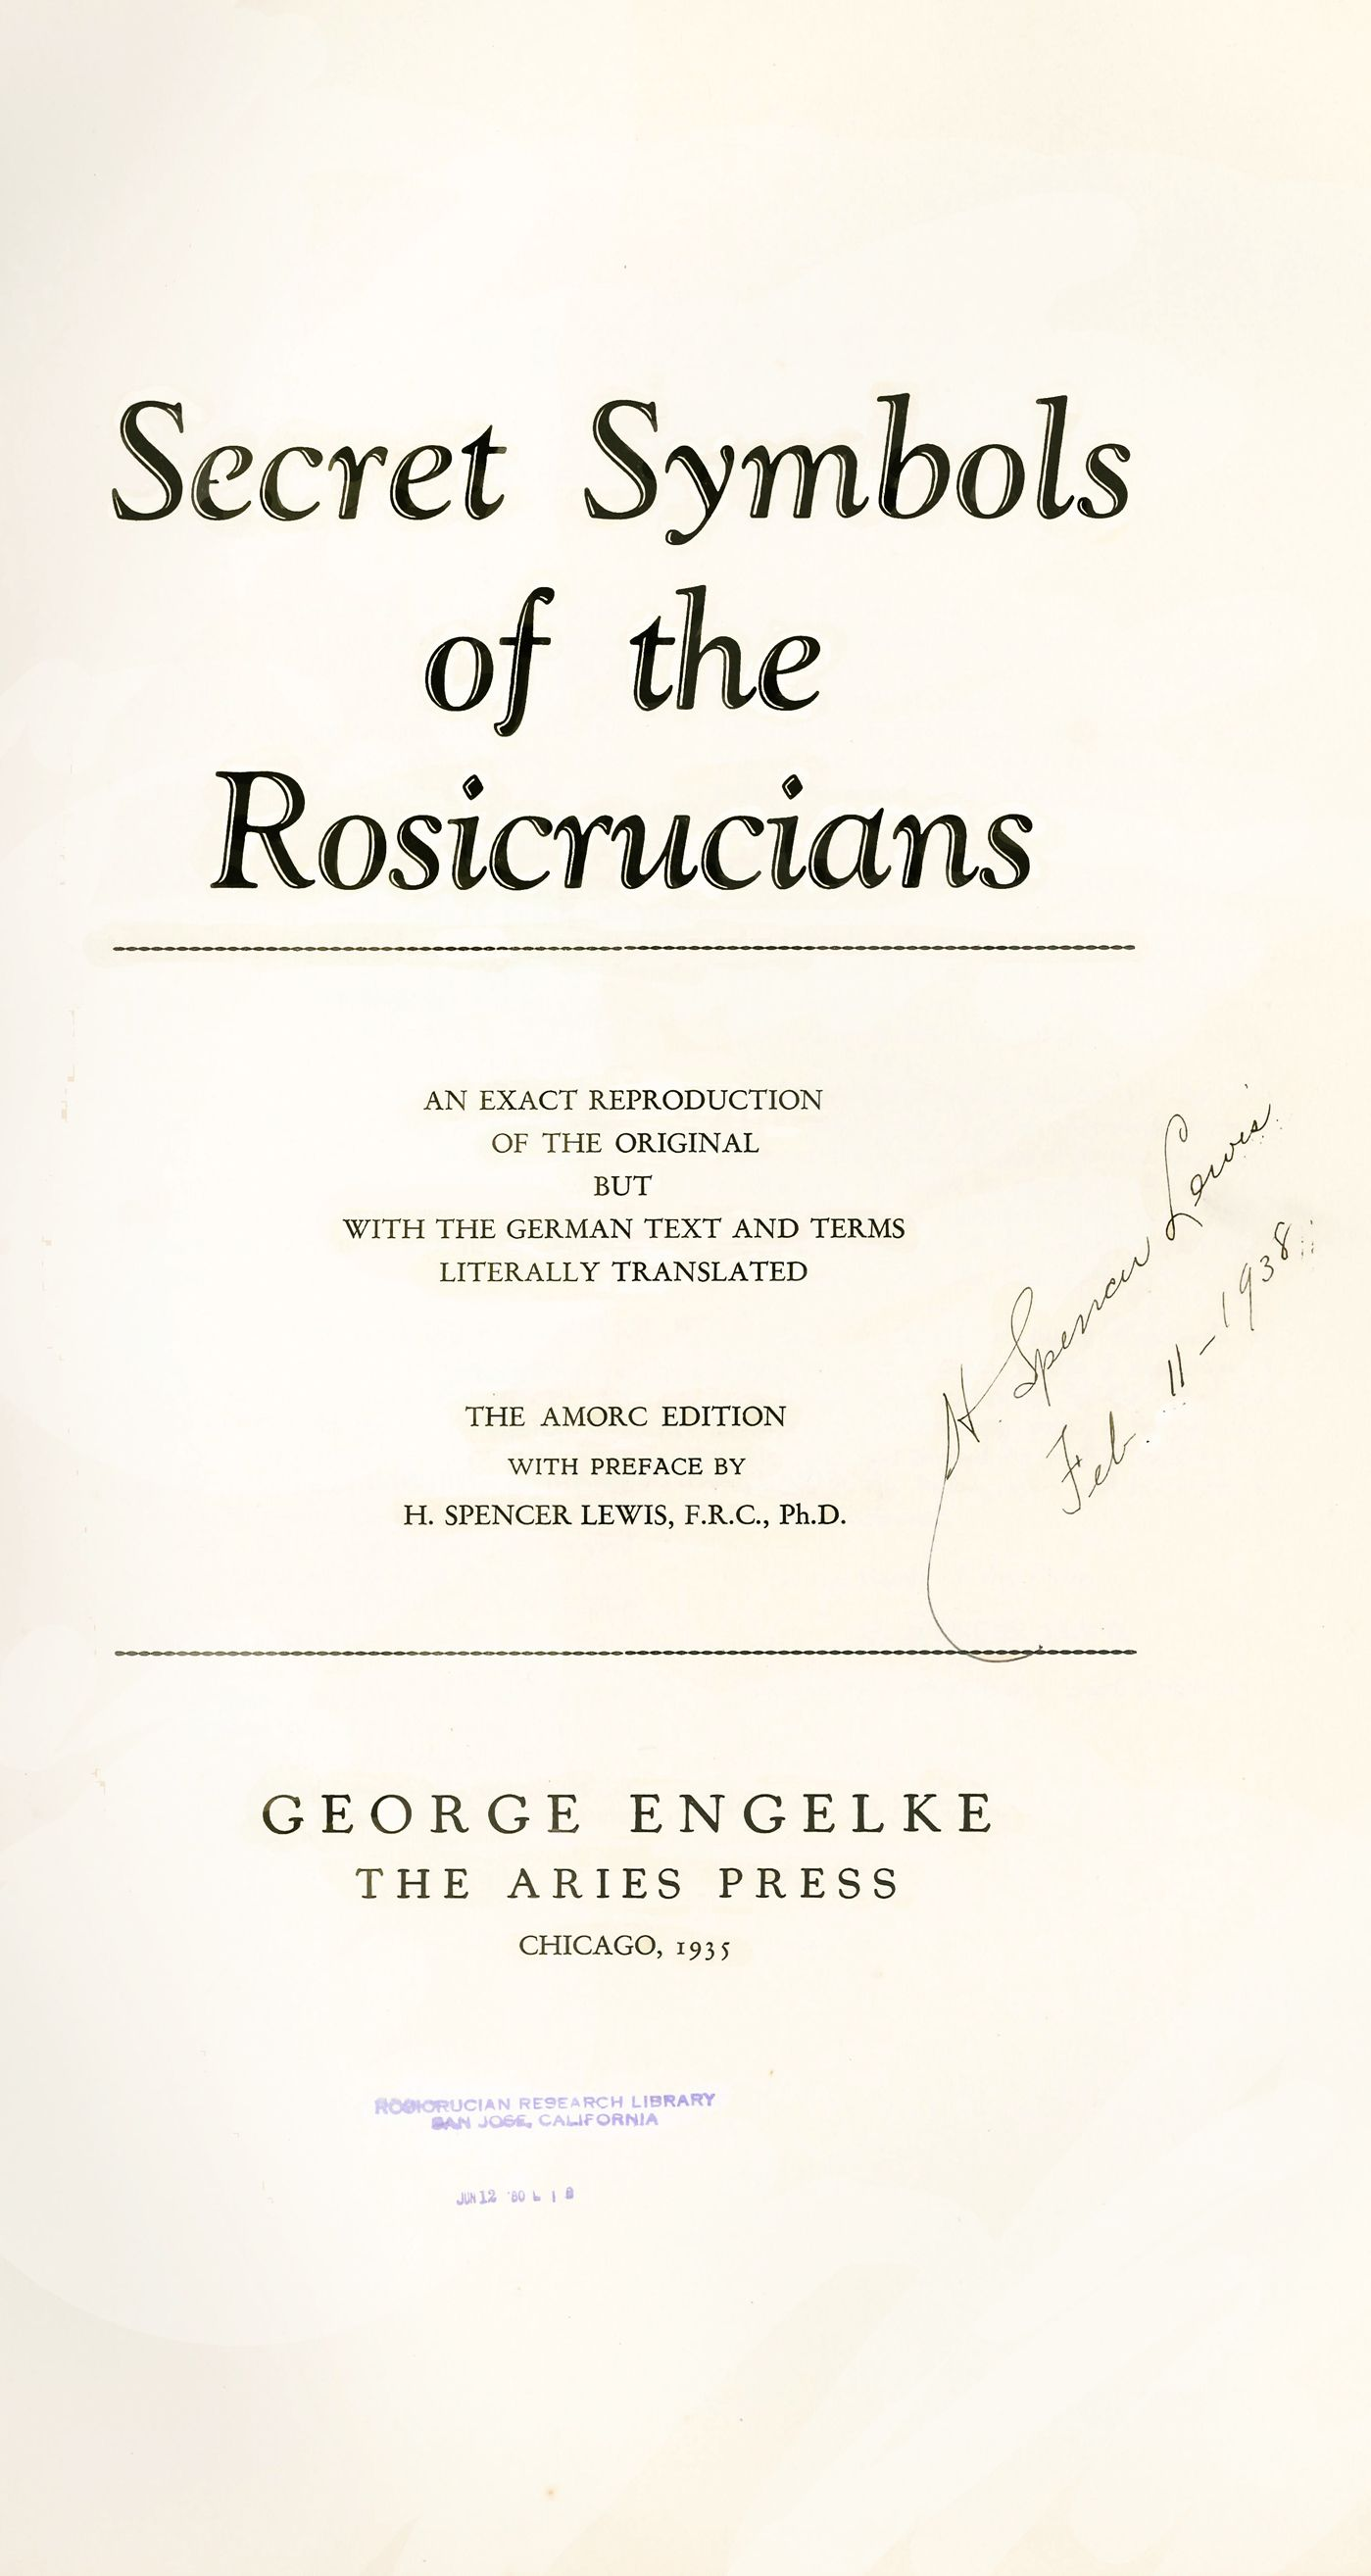 Welcome to the Rosicrucian Collection